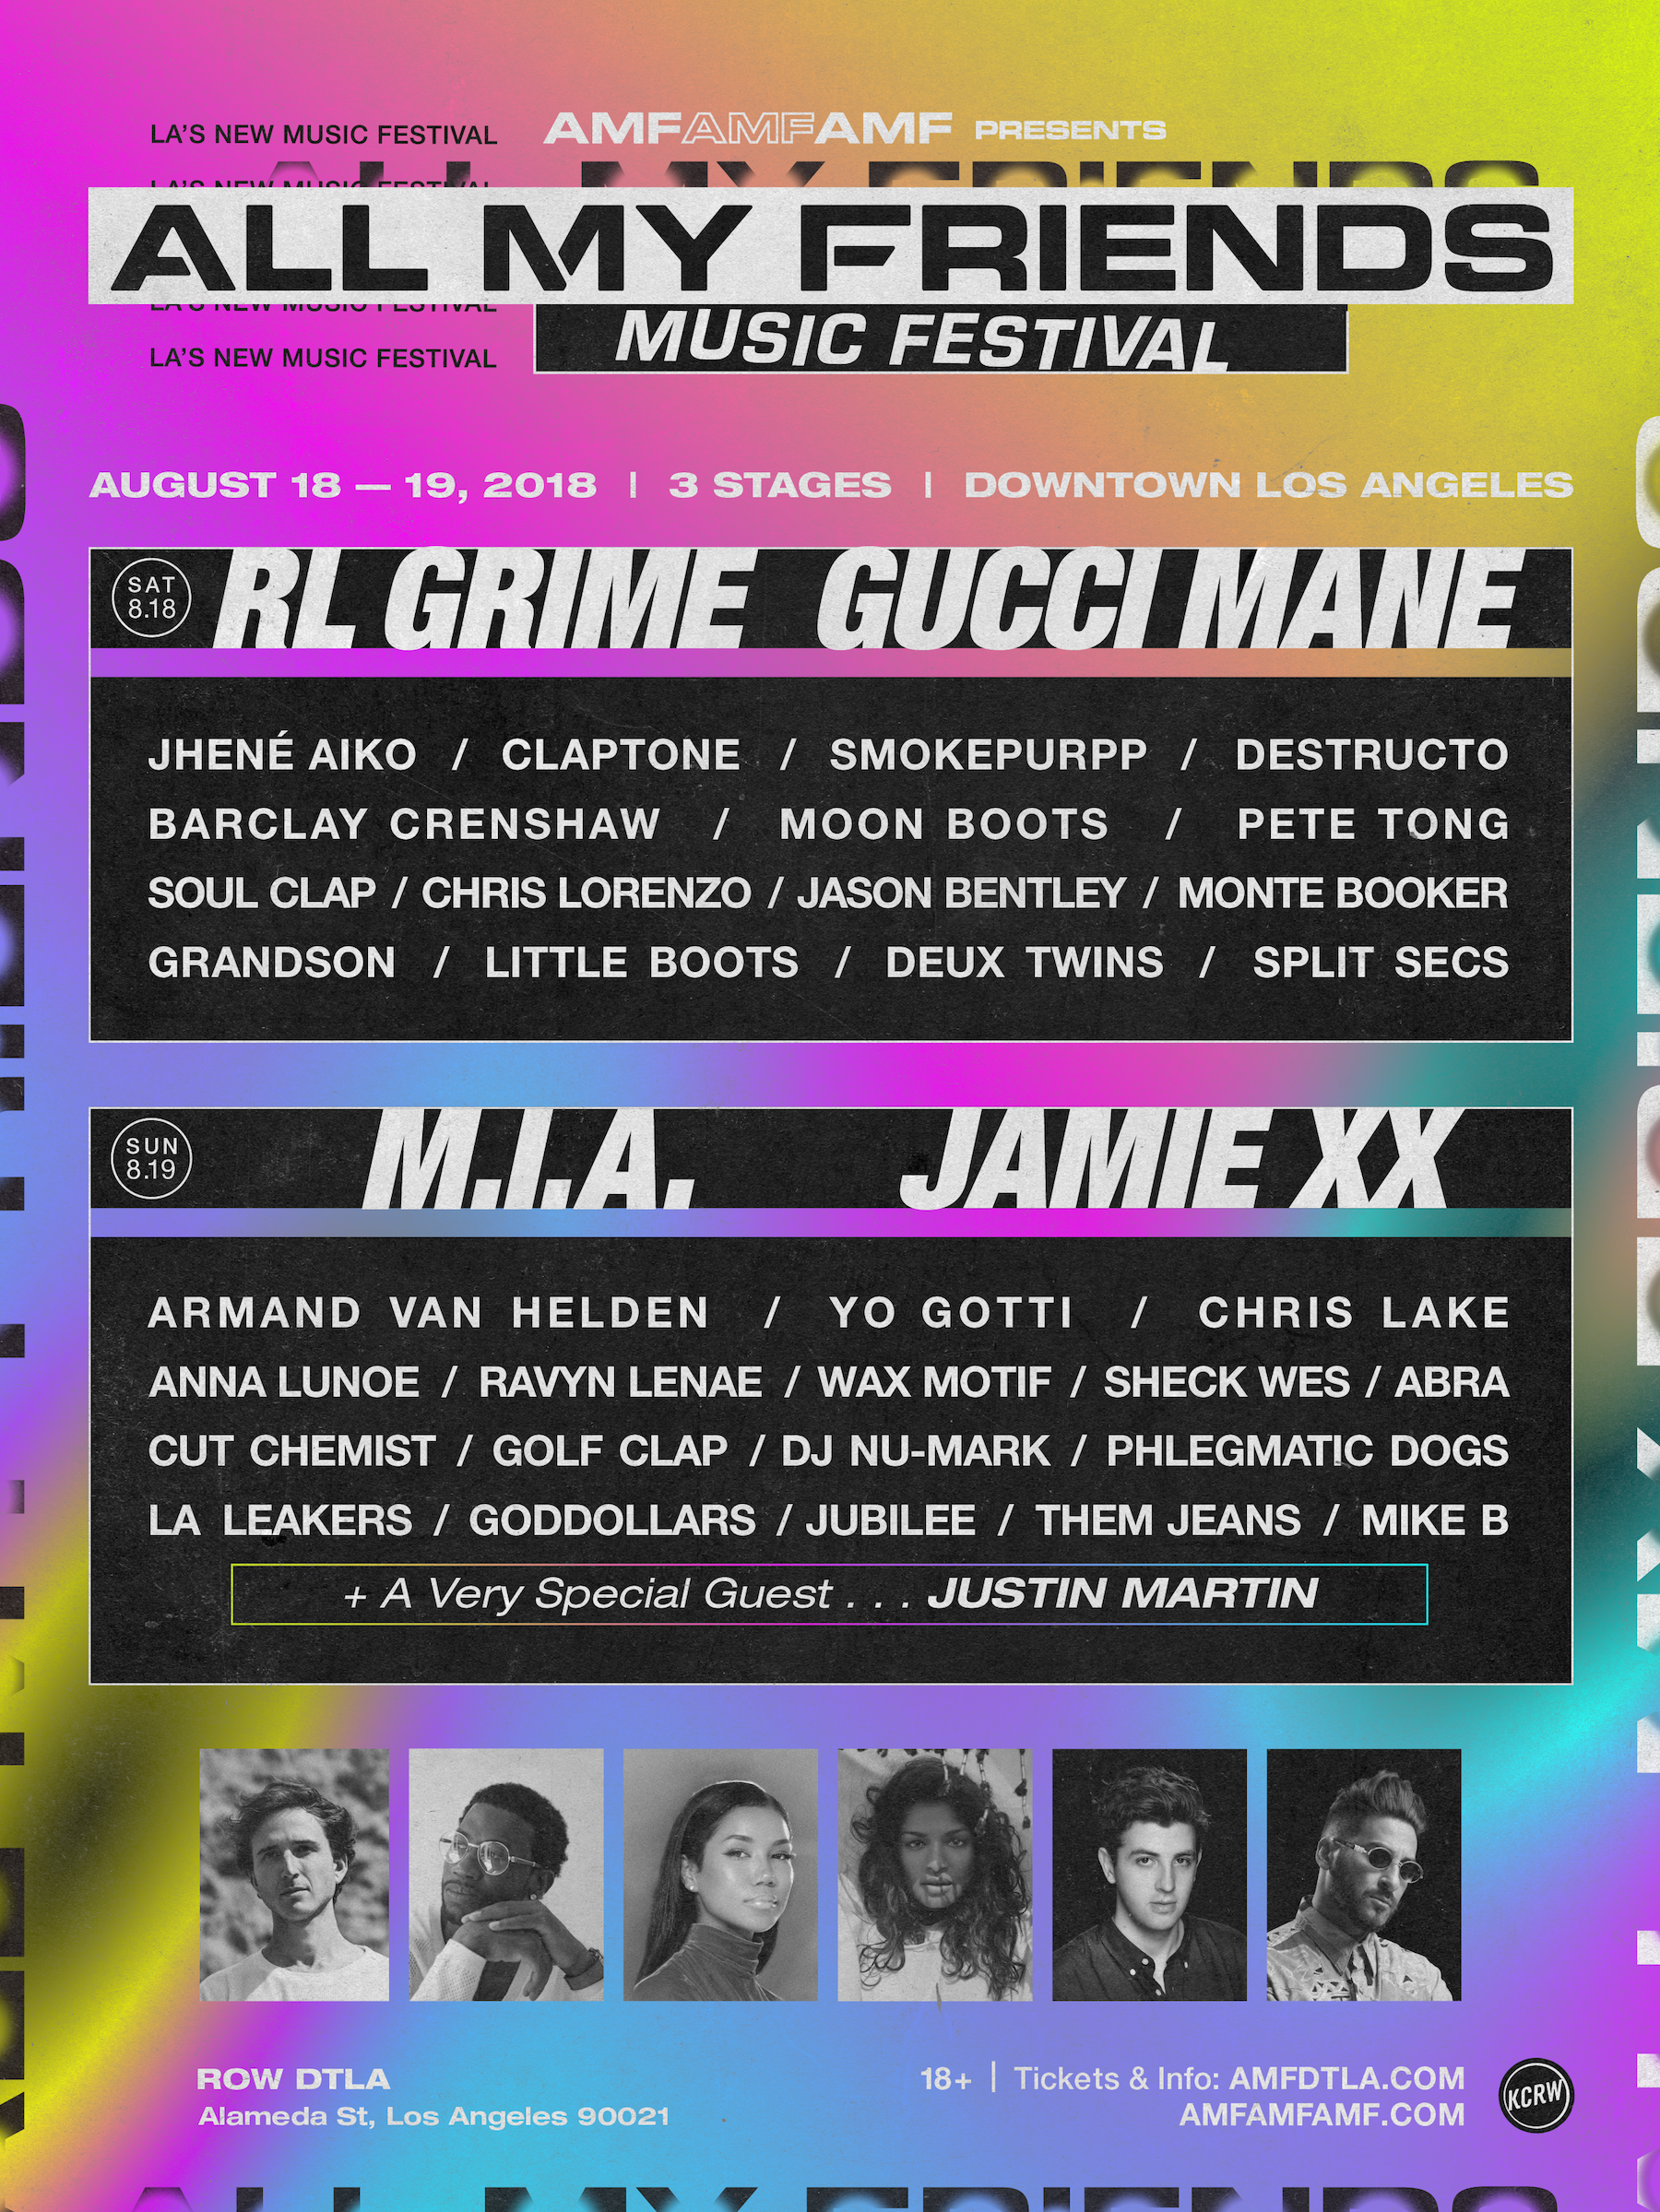 Gucci Mane, Jhene Aiko, Destructo & More To Grace AMF Fest 2018